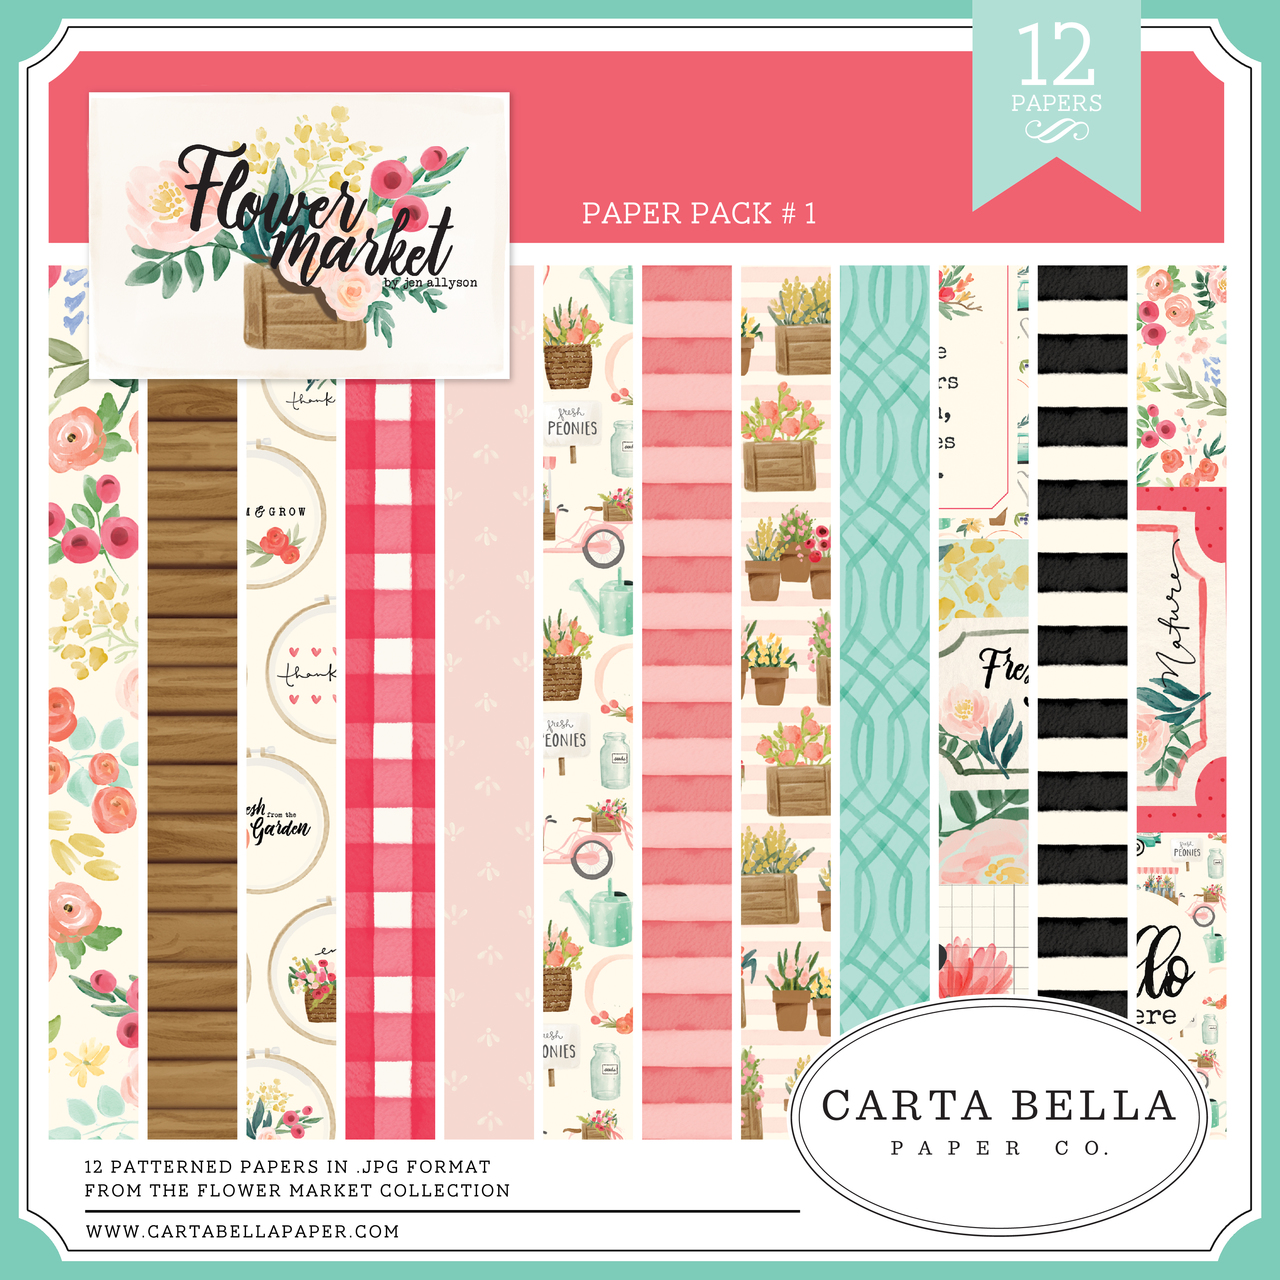 Flower Market Paper Pack #1